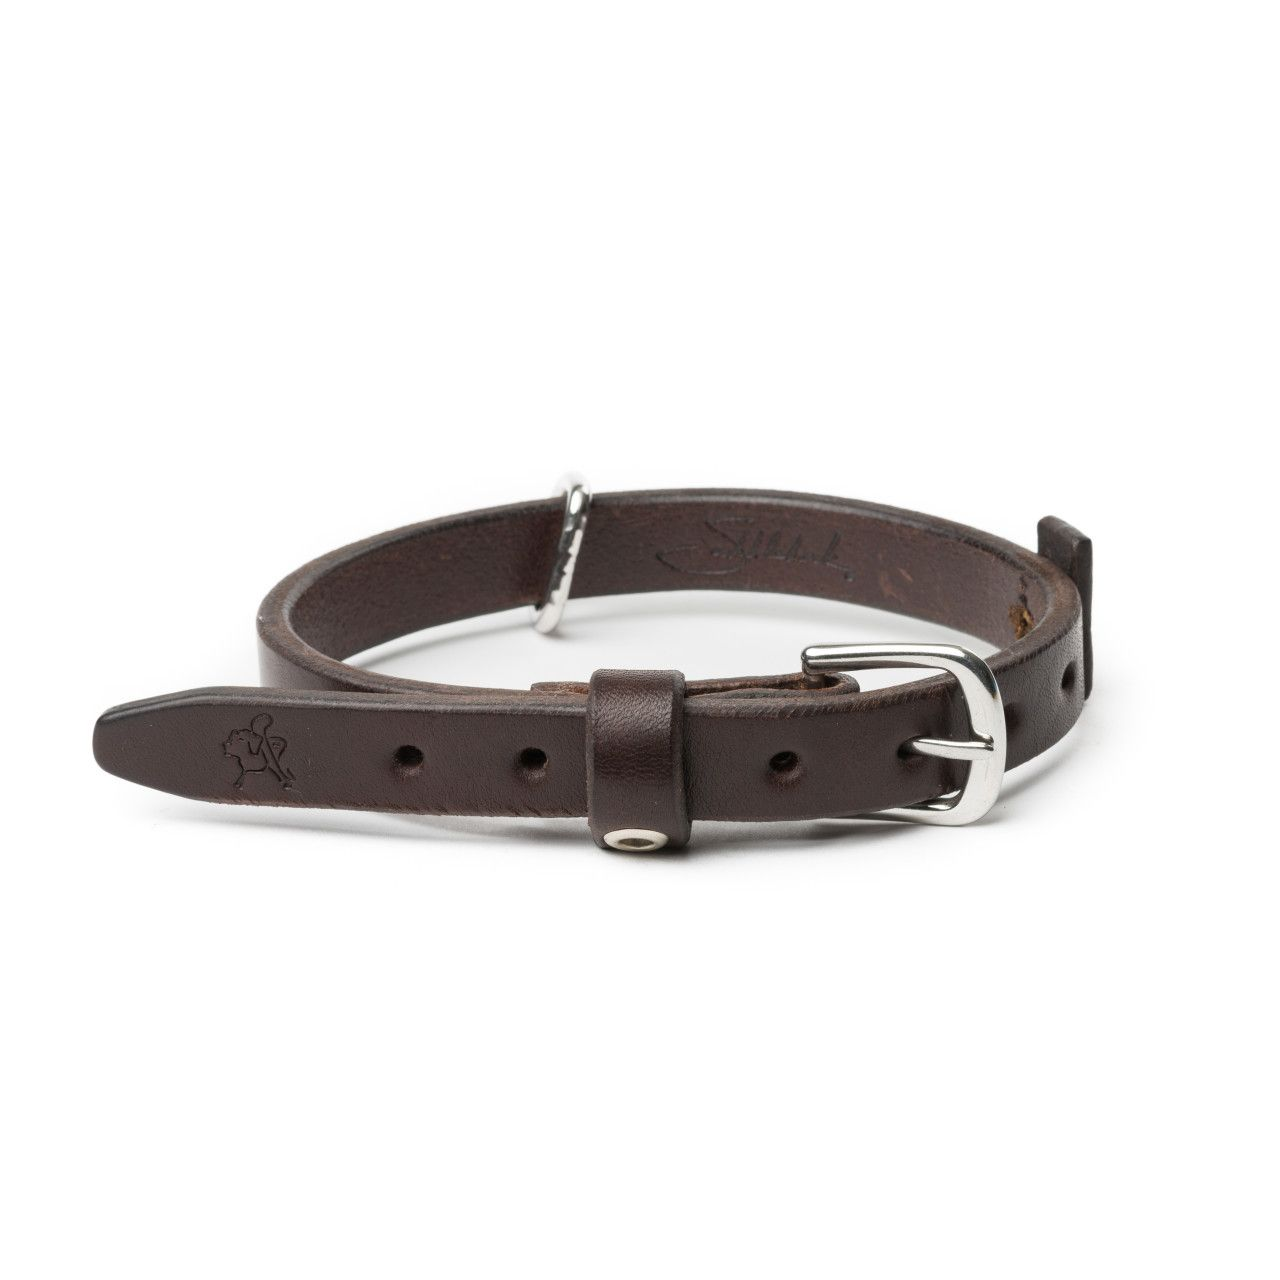 leather dog collar small in dark coffee brown leather